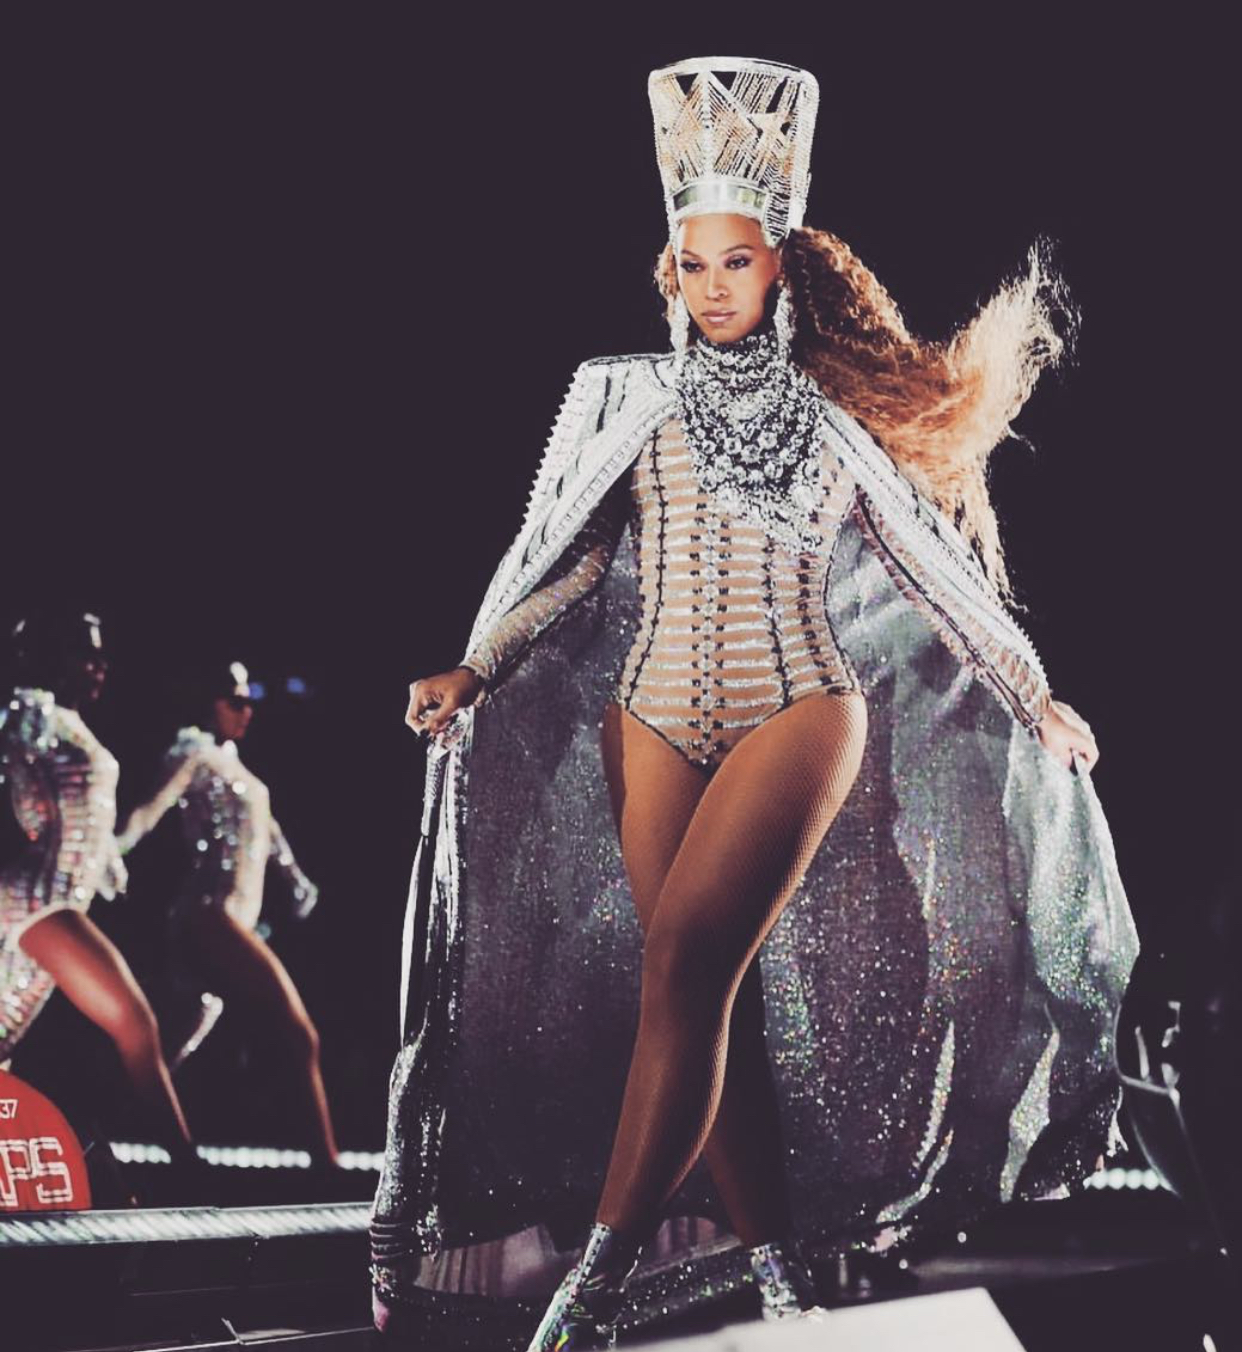 lifestyle     hayjude The two aspects of her Beychella fashion I enjoyed the most were her  Christian Louboutin style boot with holographic fringe detailing and the  custom Balmain